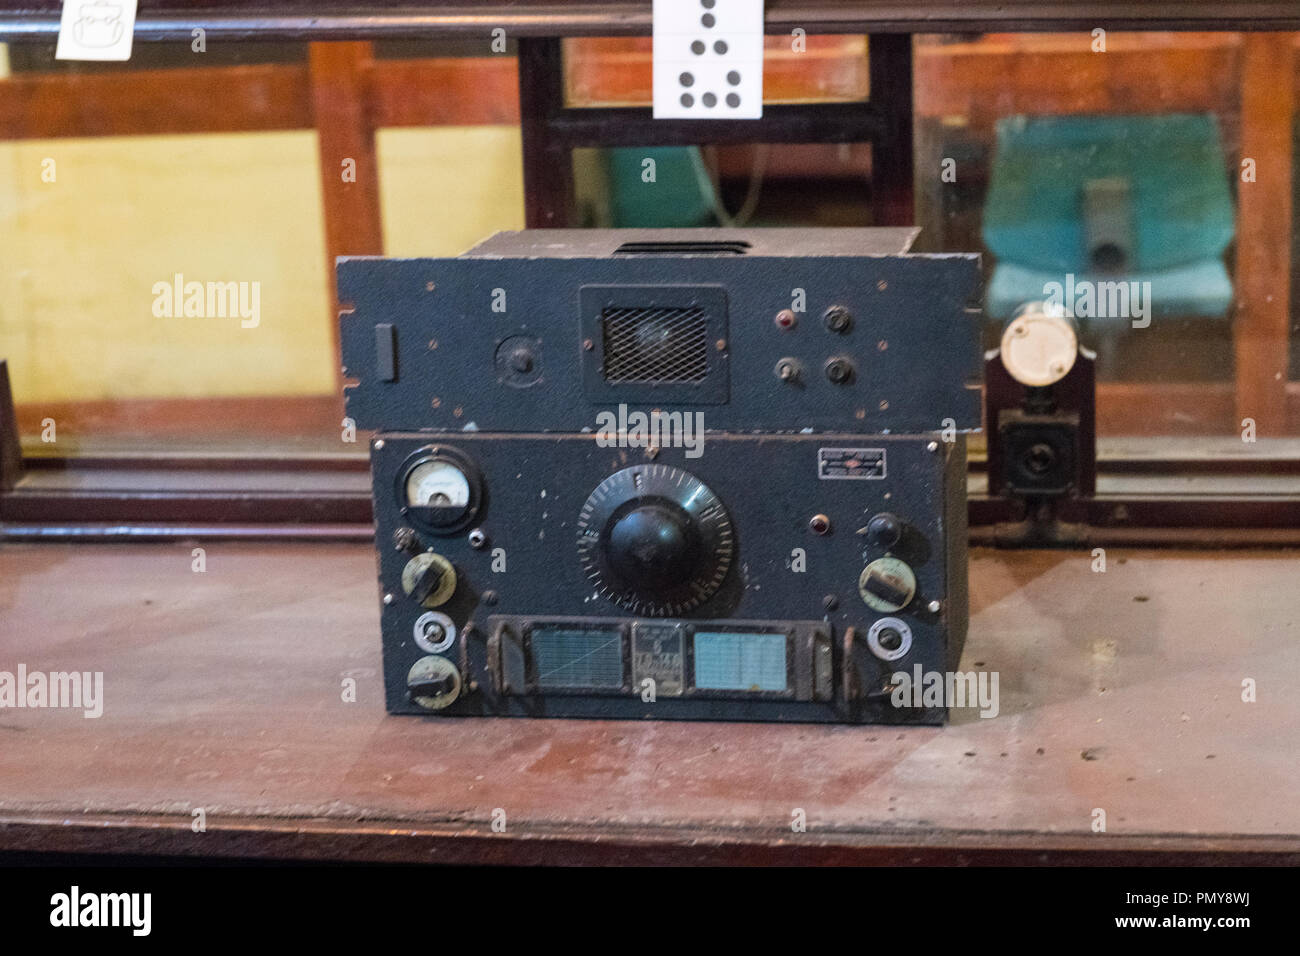 Liverpool Exchange Flags Western Approaches HQ WWII Second World War Derby House museum bunker Citadel Fortress Citadel or Fortress radio receiver Stock Photo